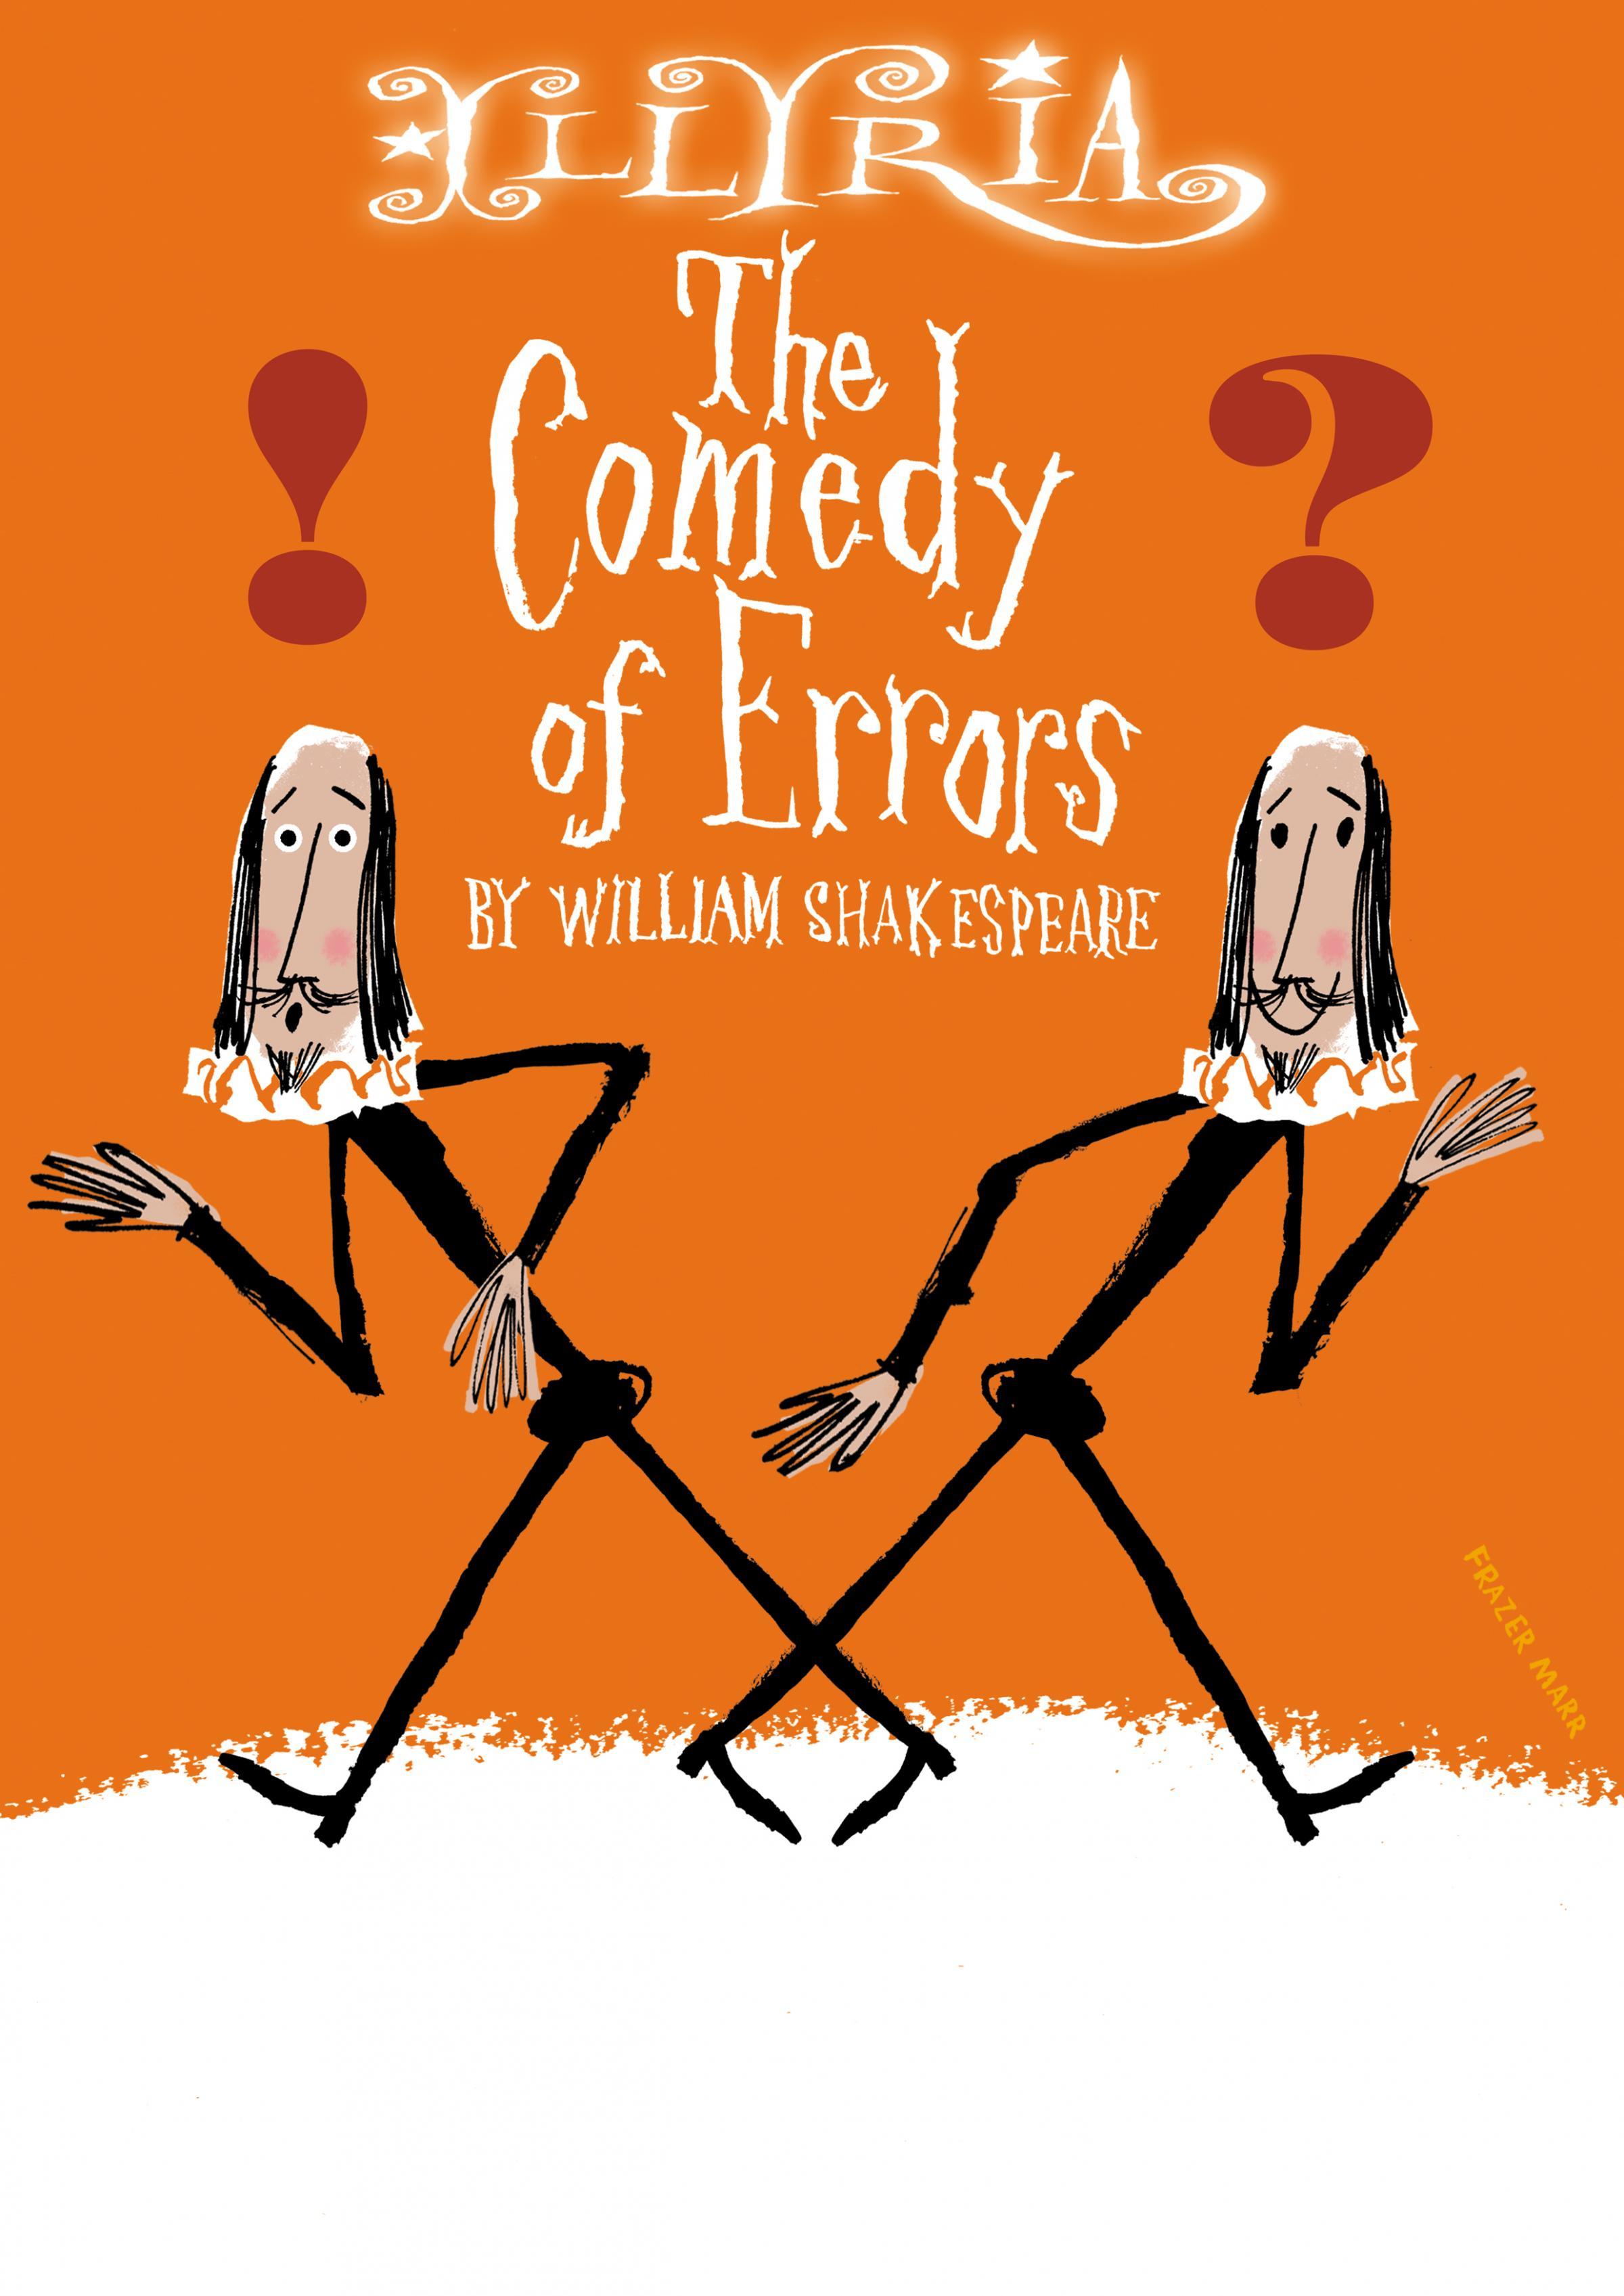 Illyria performance of The Comedy of Errors